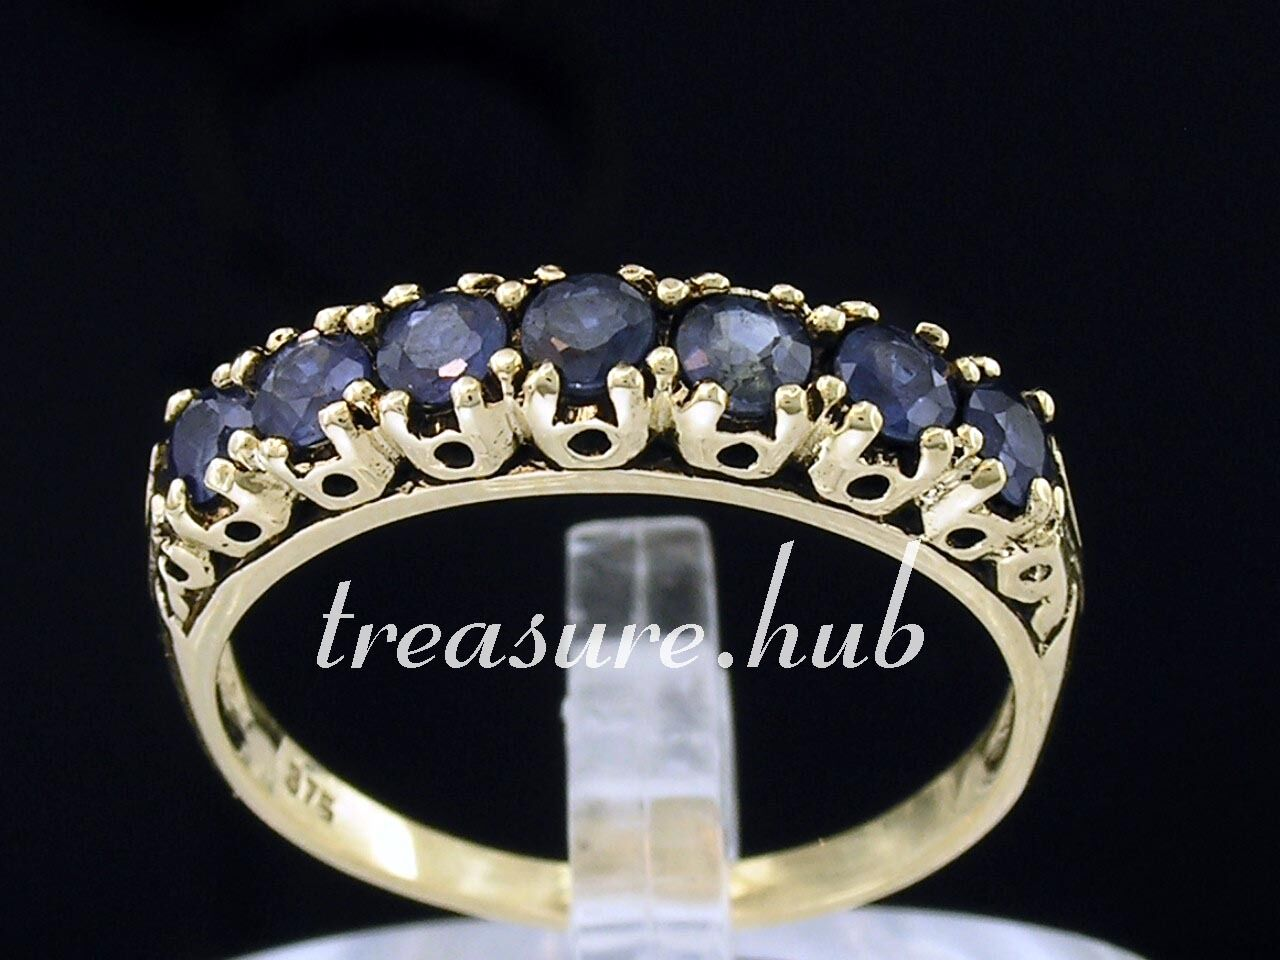 R302 - Genuine 9K Yellow gold Natural Sapphire 7-stone Eternity Ring size N